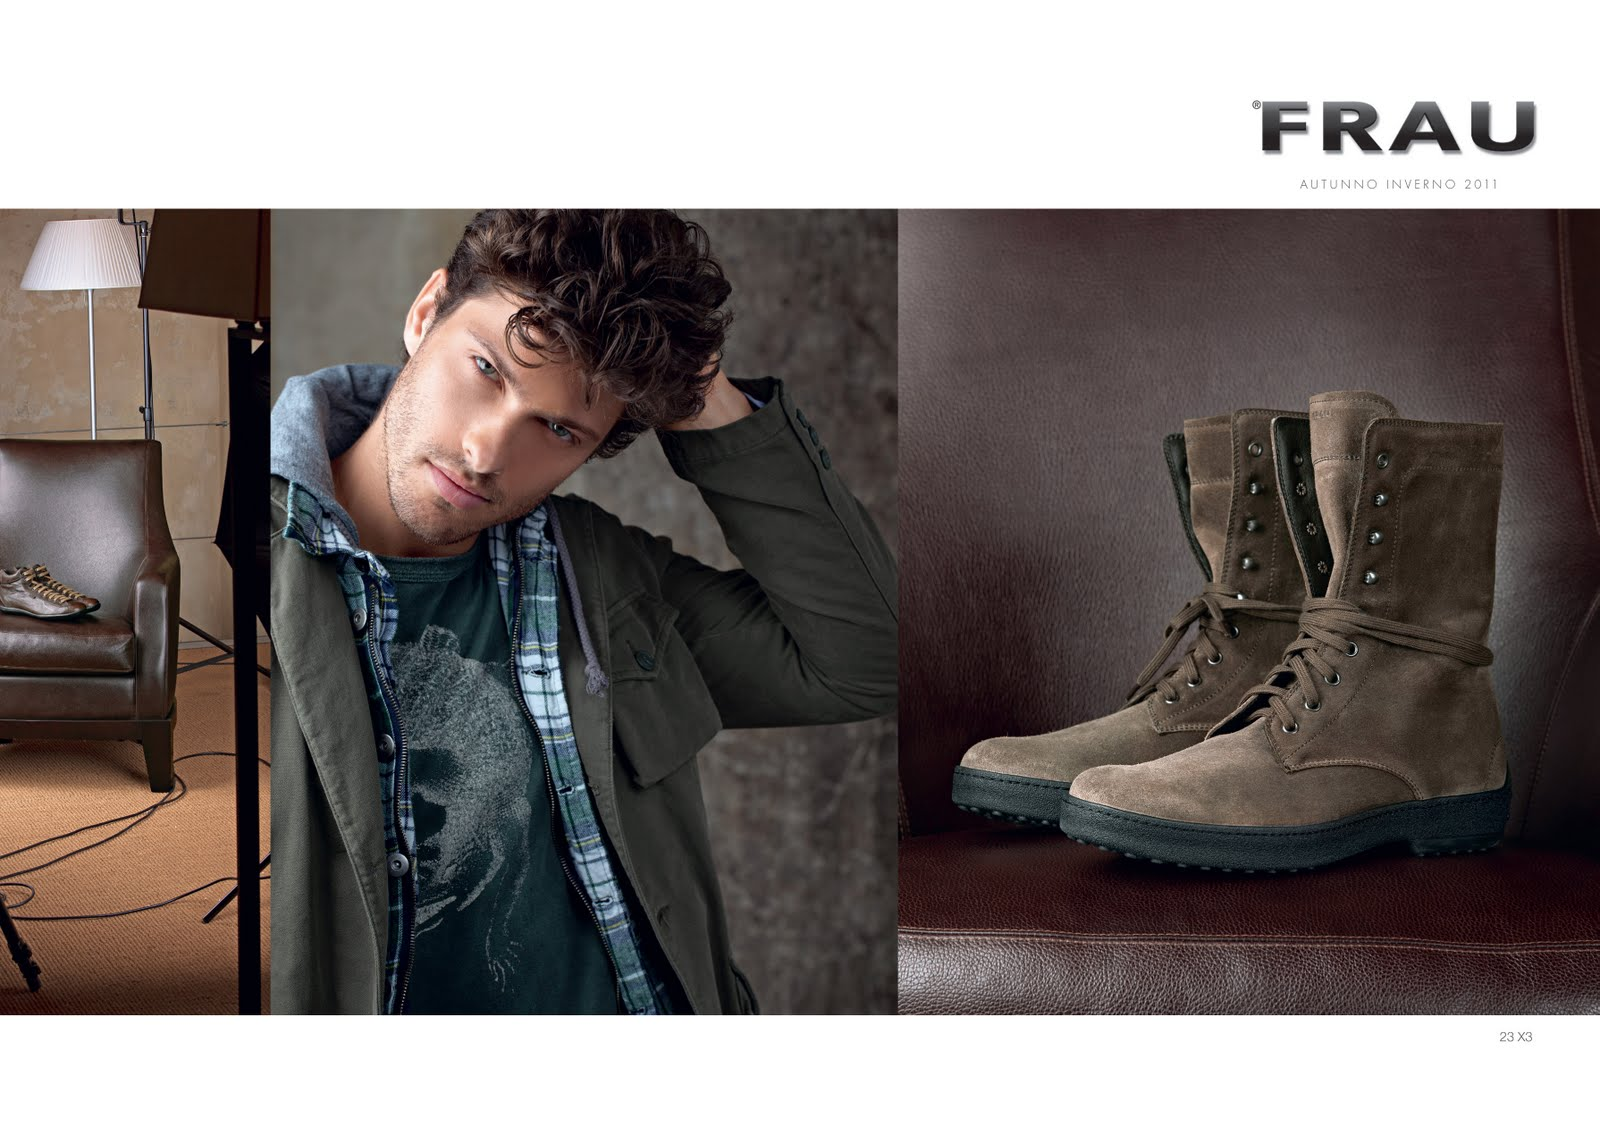 INDEPENDENT MEN: CAMPAIGN : RICARDO DAL MORO for FRAU fw 11-12